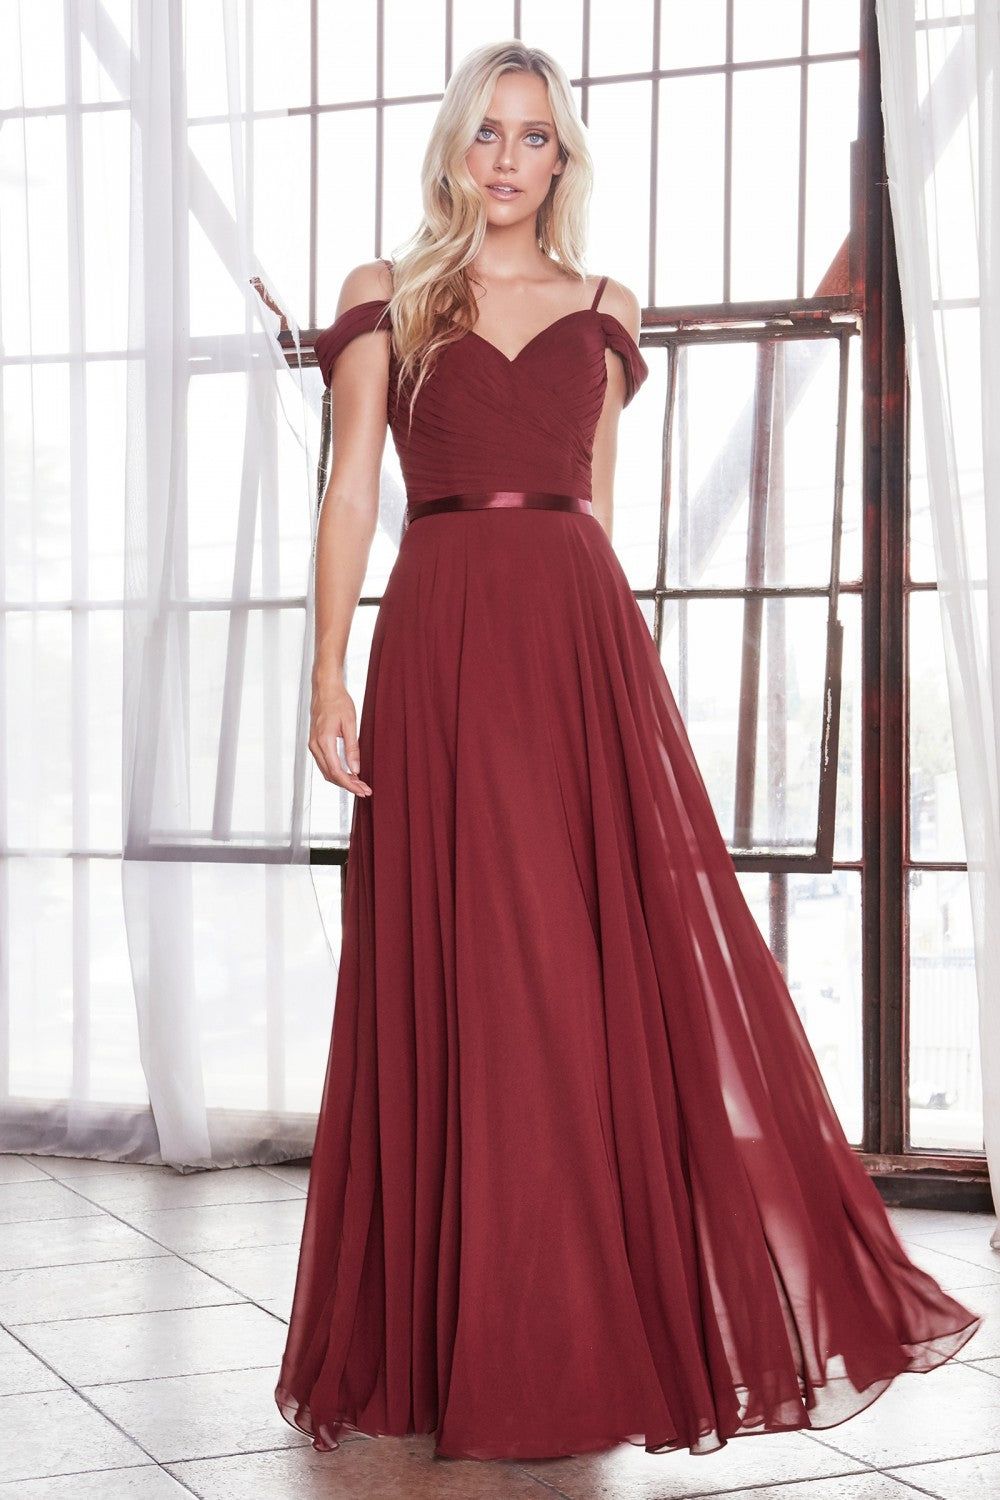 Darcy Bridesmaid Dress Chiffon Off the Shoulder in Burgundy C156NE-Burgundy  SAMPLE IN STORE